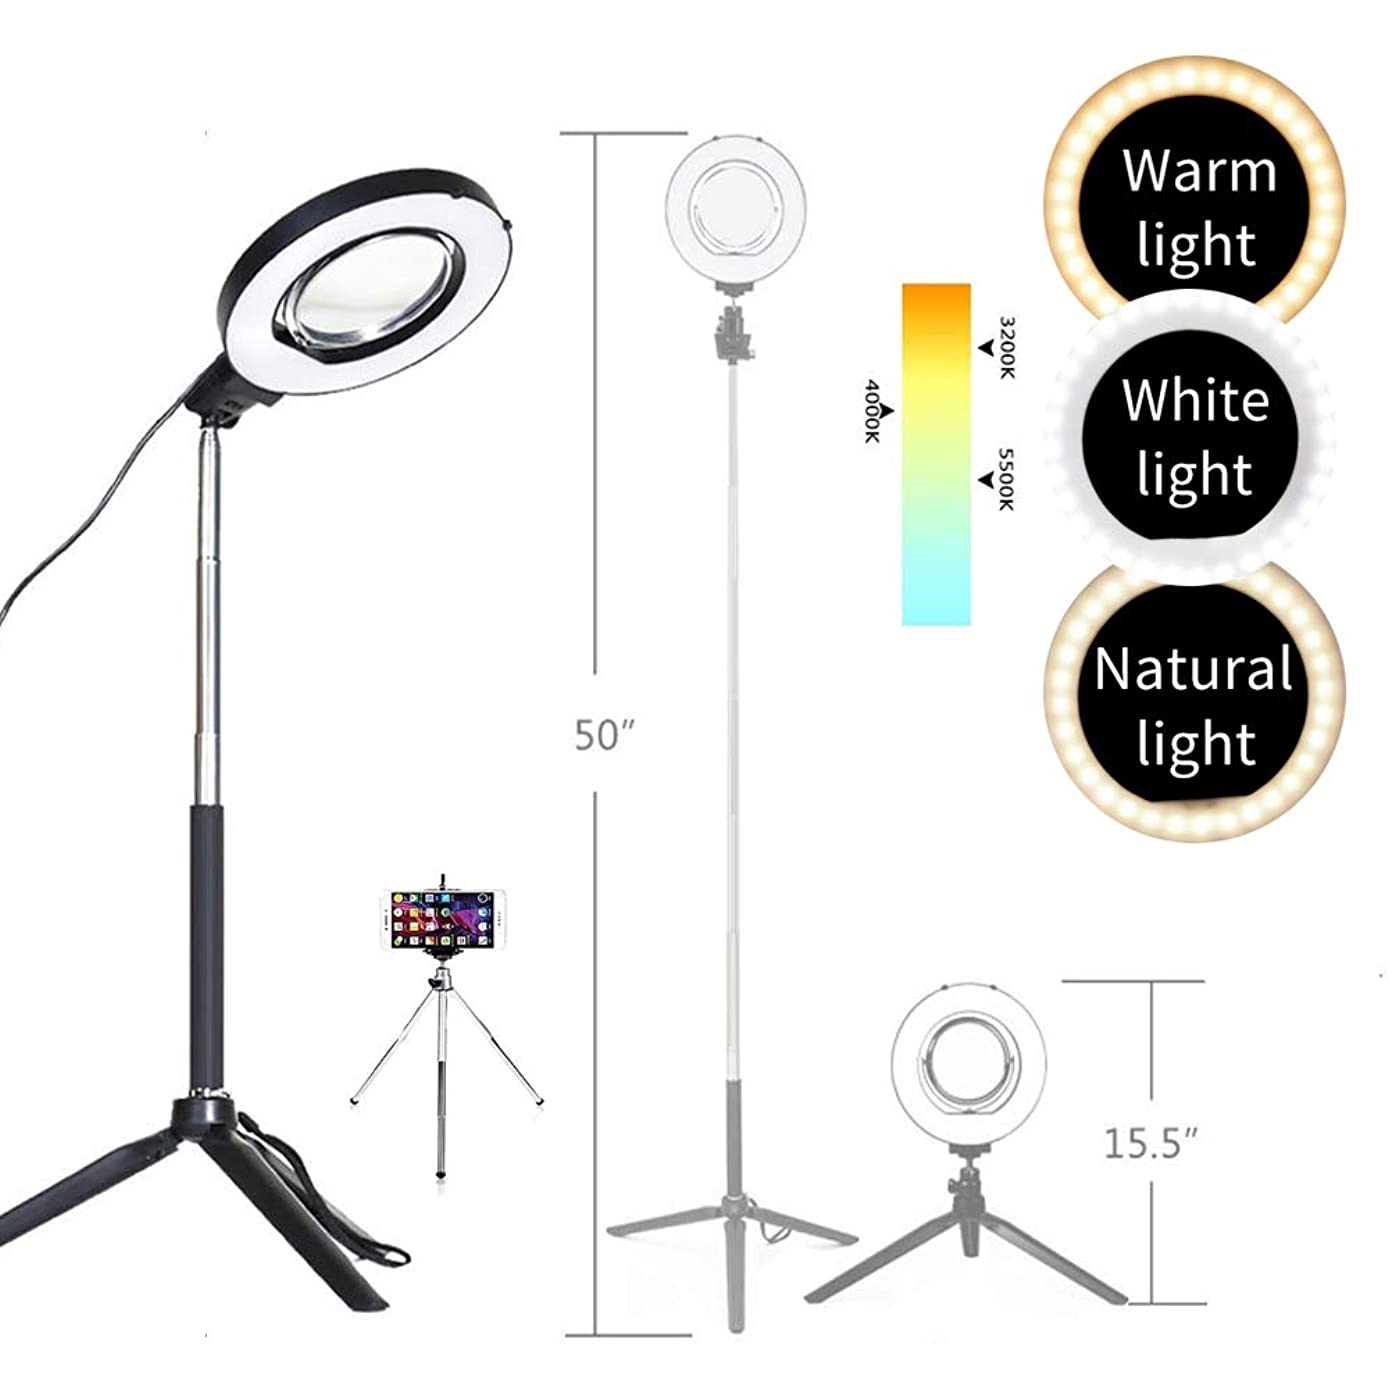 Dimmable Ring Light with Adjustable Height Light Stand,Selfie Stick and USB Plug,6